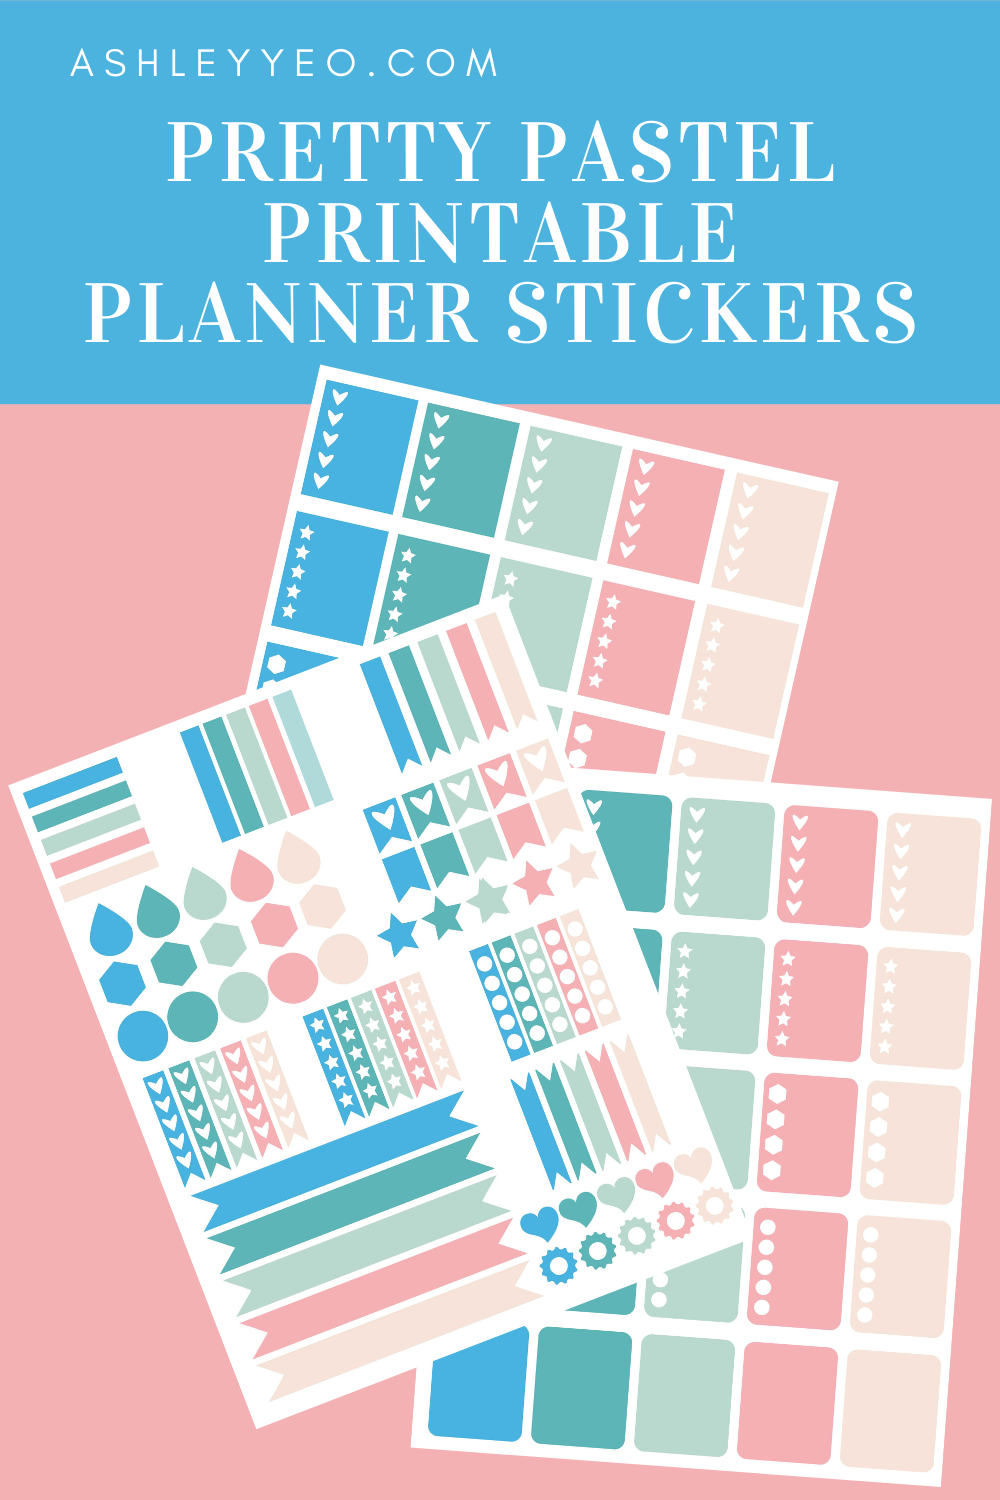 Pretty Pastel Printable Planner Stickers (Blue-Green)